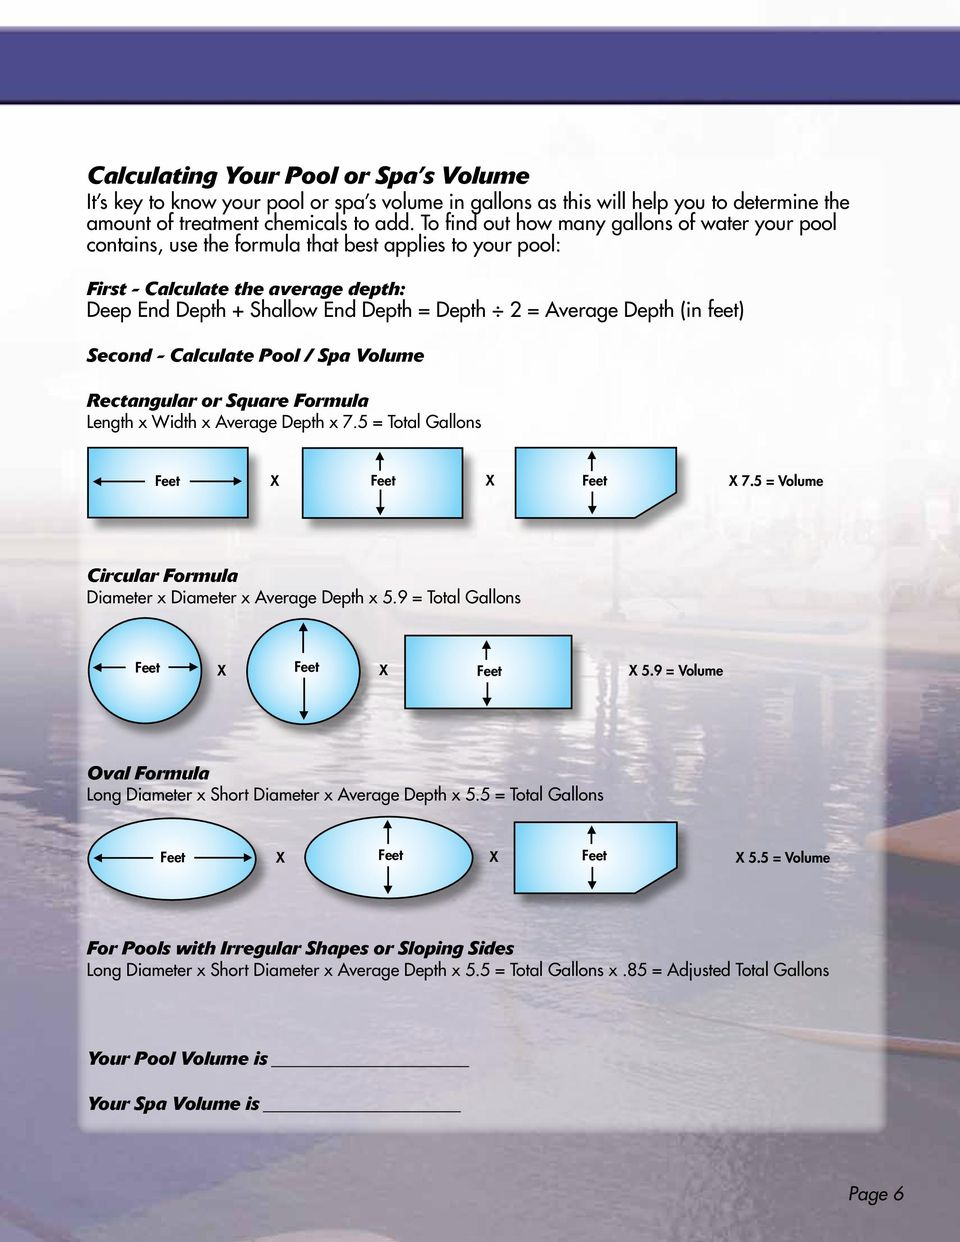 Depth (in feet) Second - Calculate Pool / Spa Volume Rectangular or Square Formula Length x Width x Average Depth x 7.5 = Total Gallons Feet X Feet X Feet X 7.